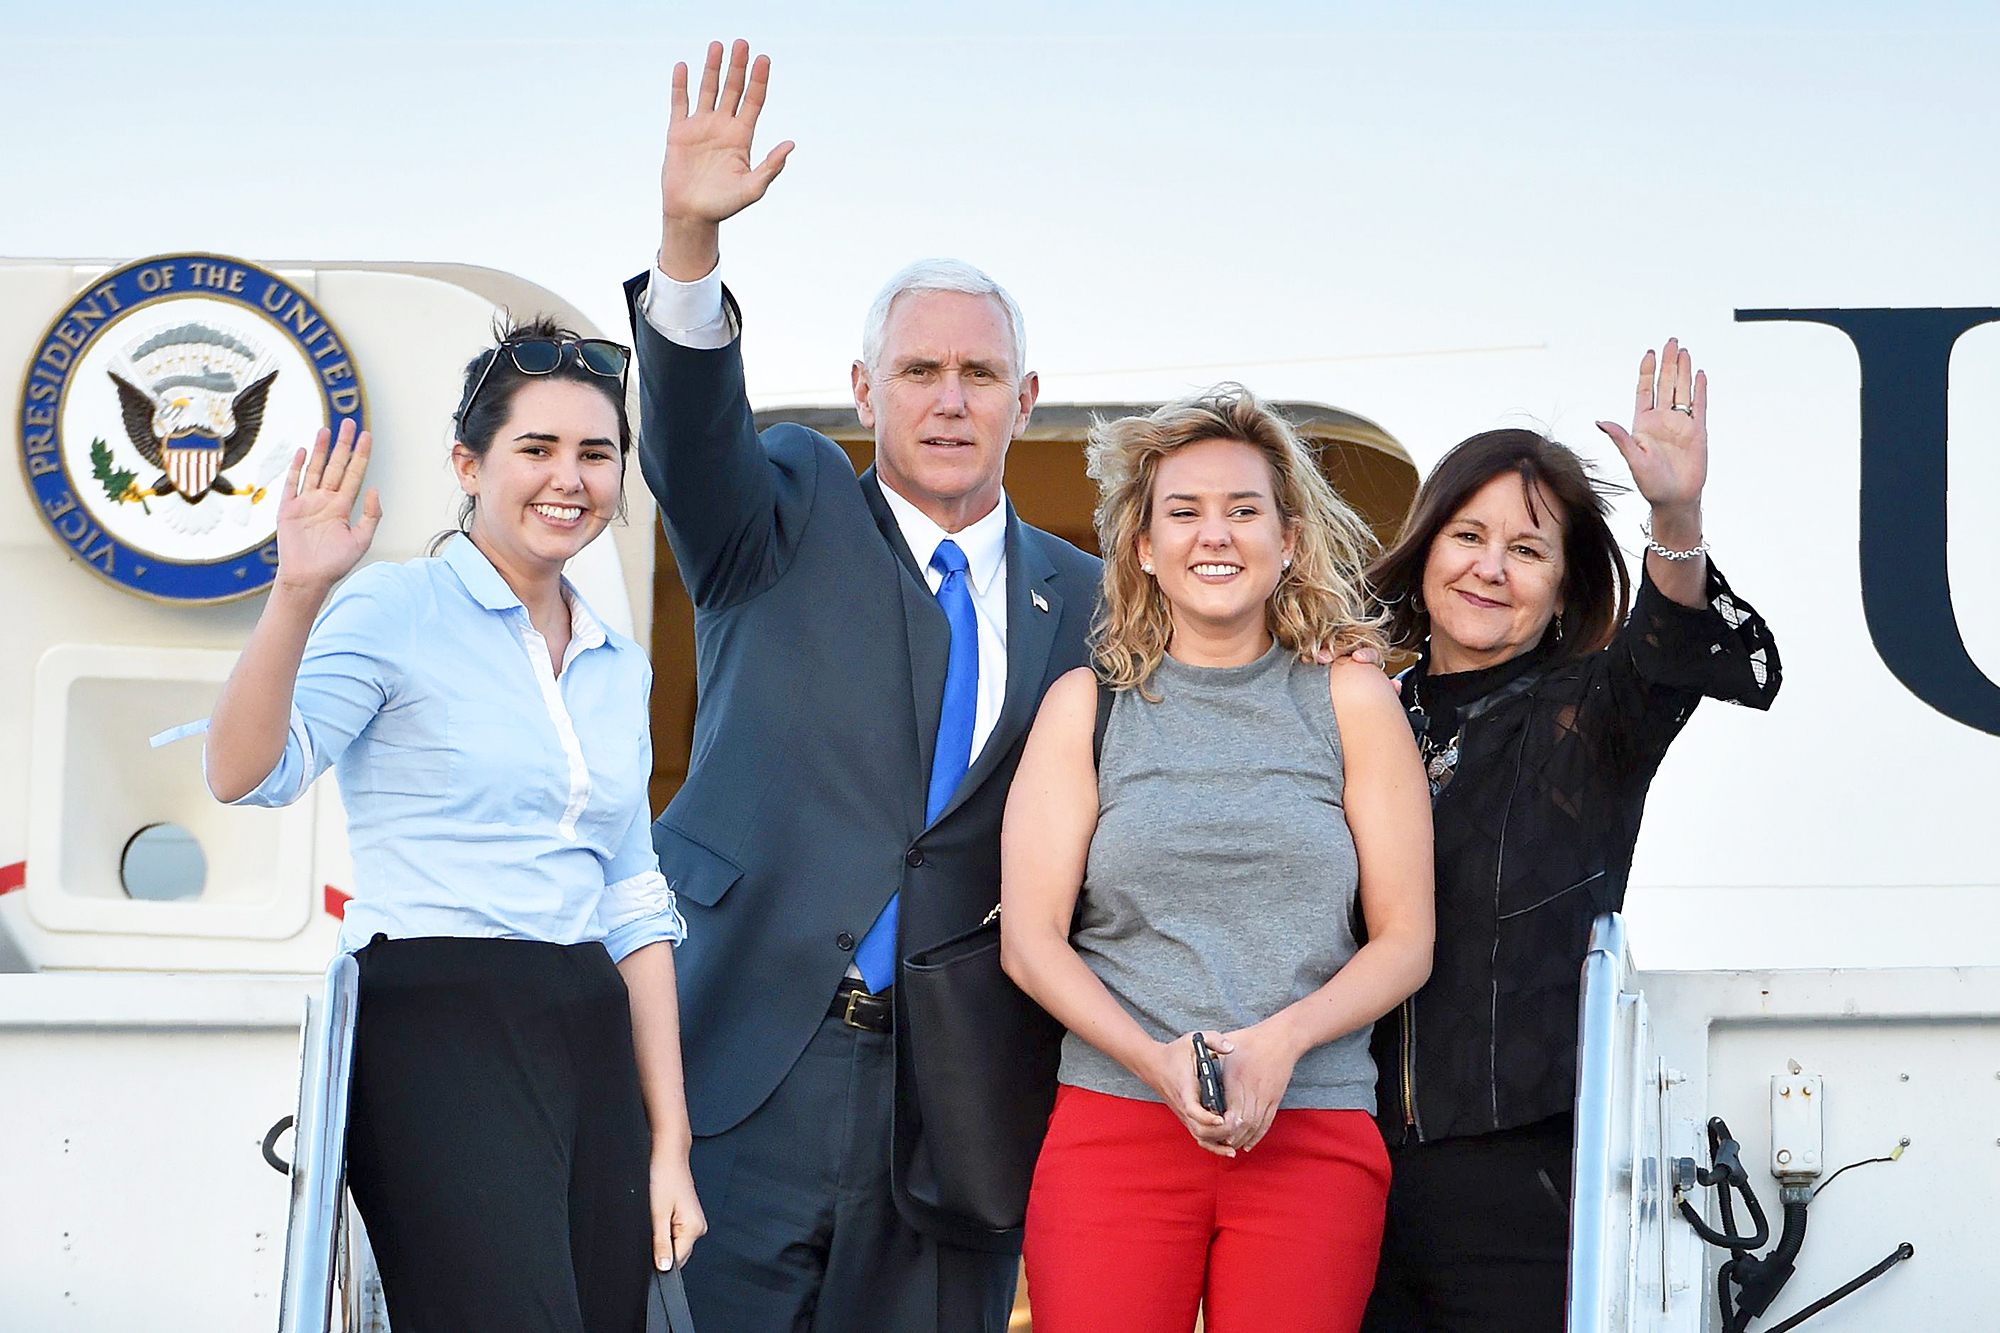 Mike Pence, Karen Pence, Audrey Pence and Charlotte Pence